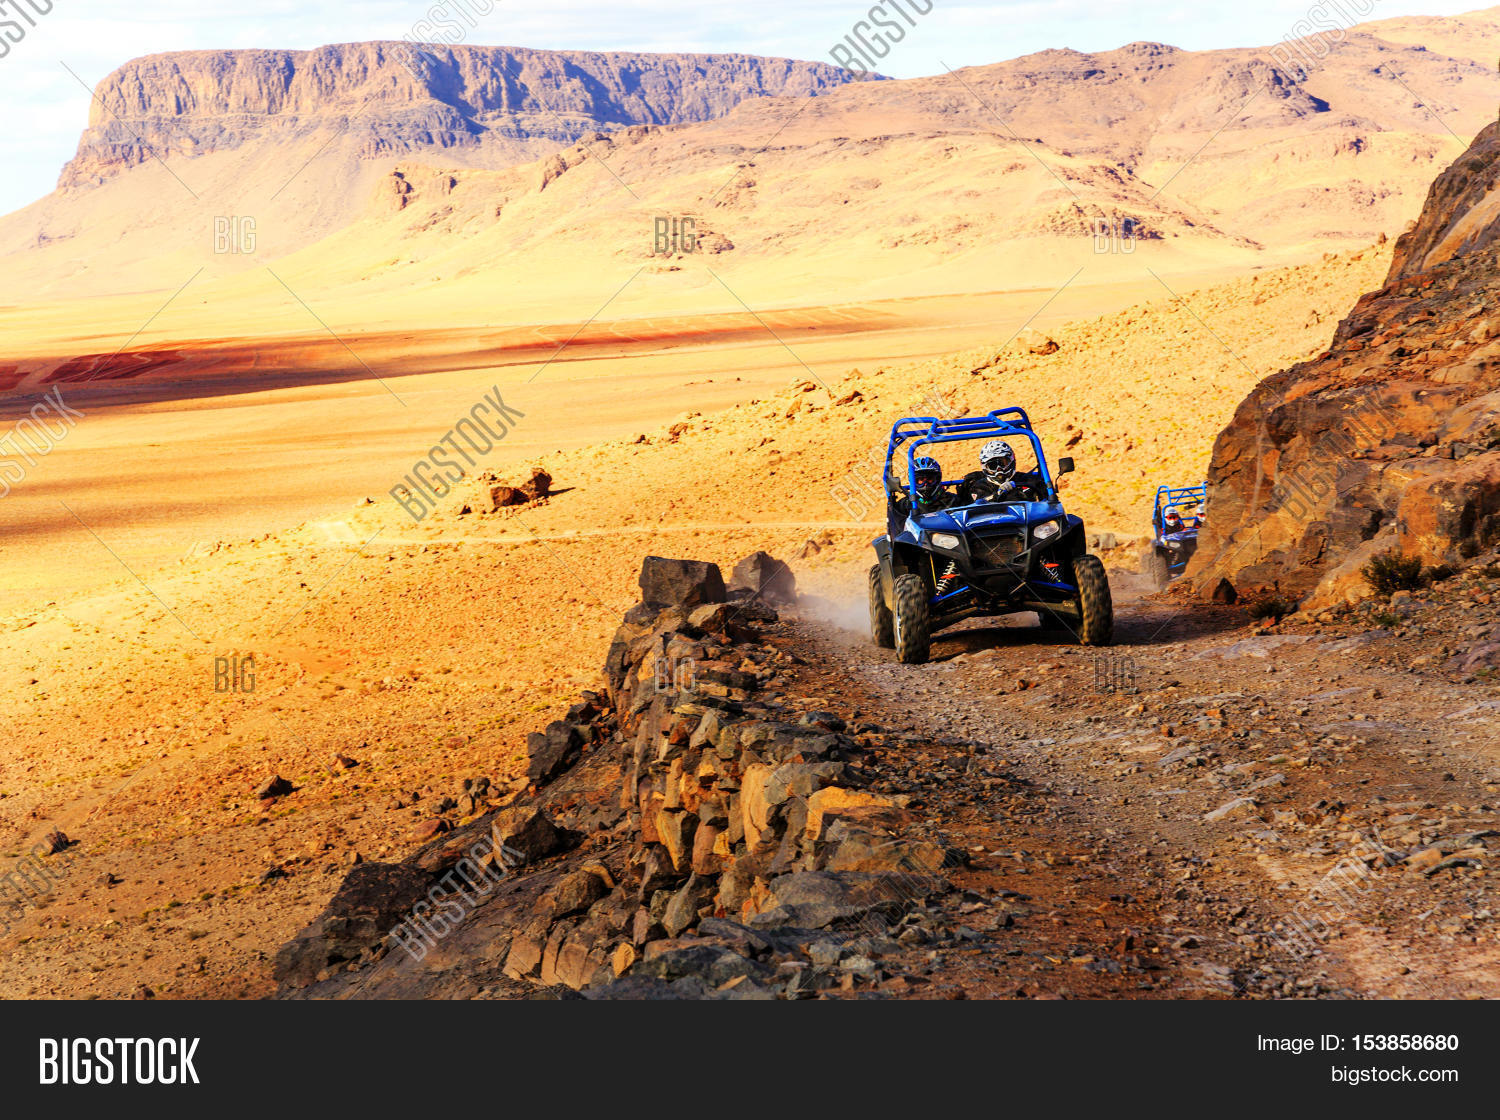 hight resolution of merzouga morocco feb 21 2016 blue polaris rzr 800 crossing a mountain road in